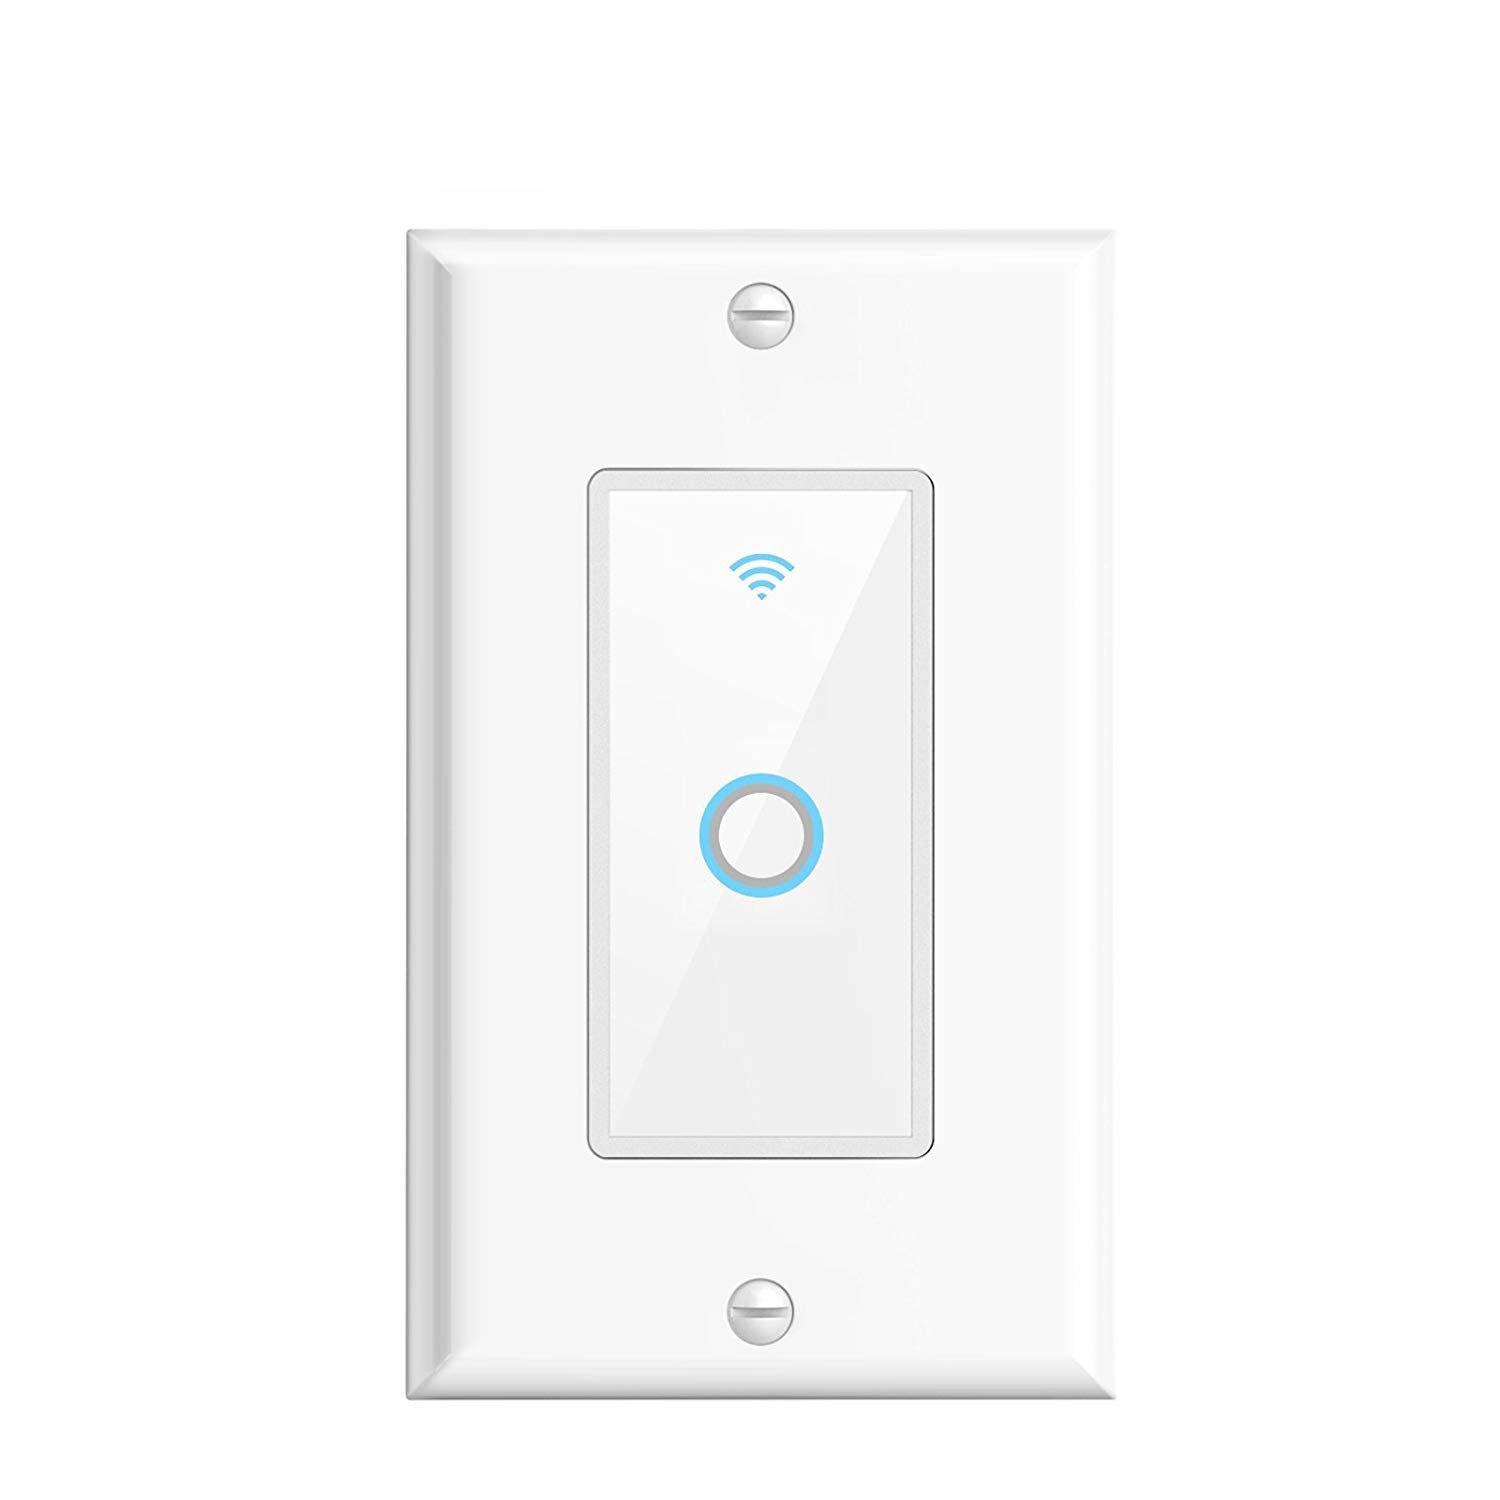 Elecstar WIFI Smart Light Switch,In-wall glass mobile phone remote control switch compatible with Alexa and Google Home, control your switch from any distance.